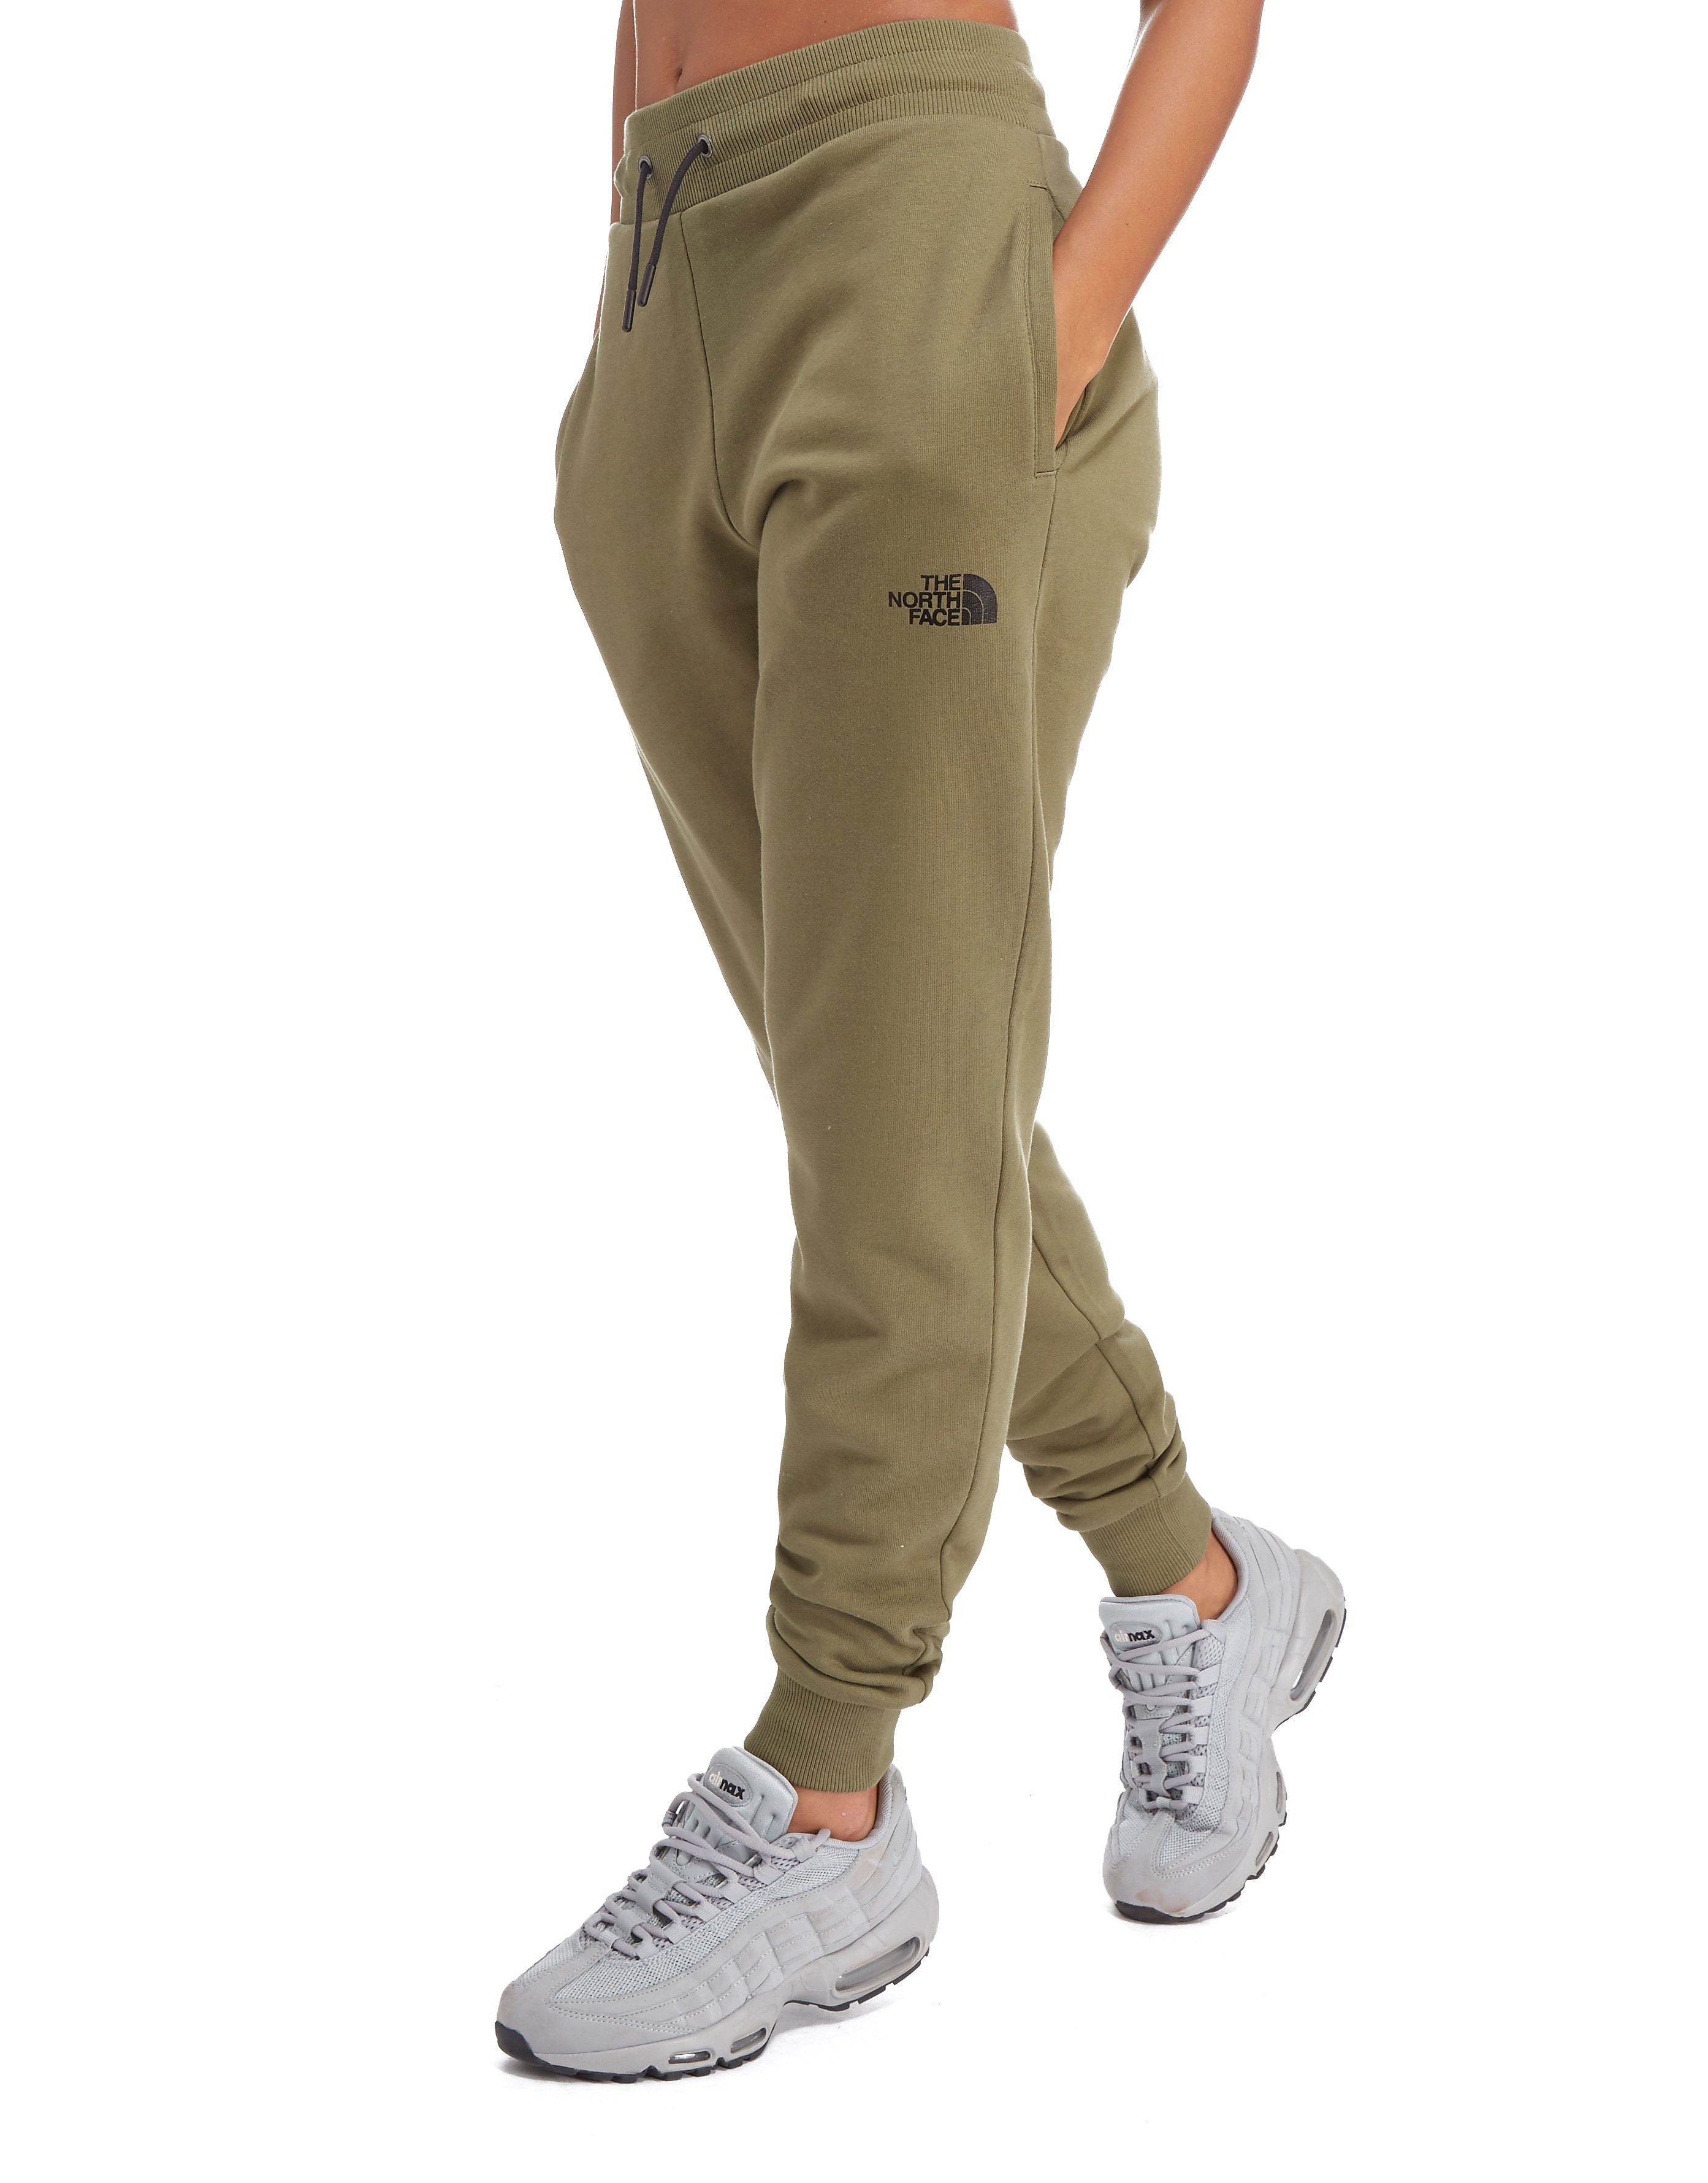 The North Face pantalón Fleece